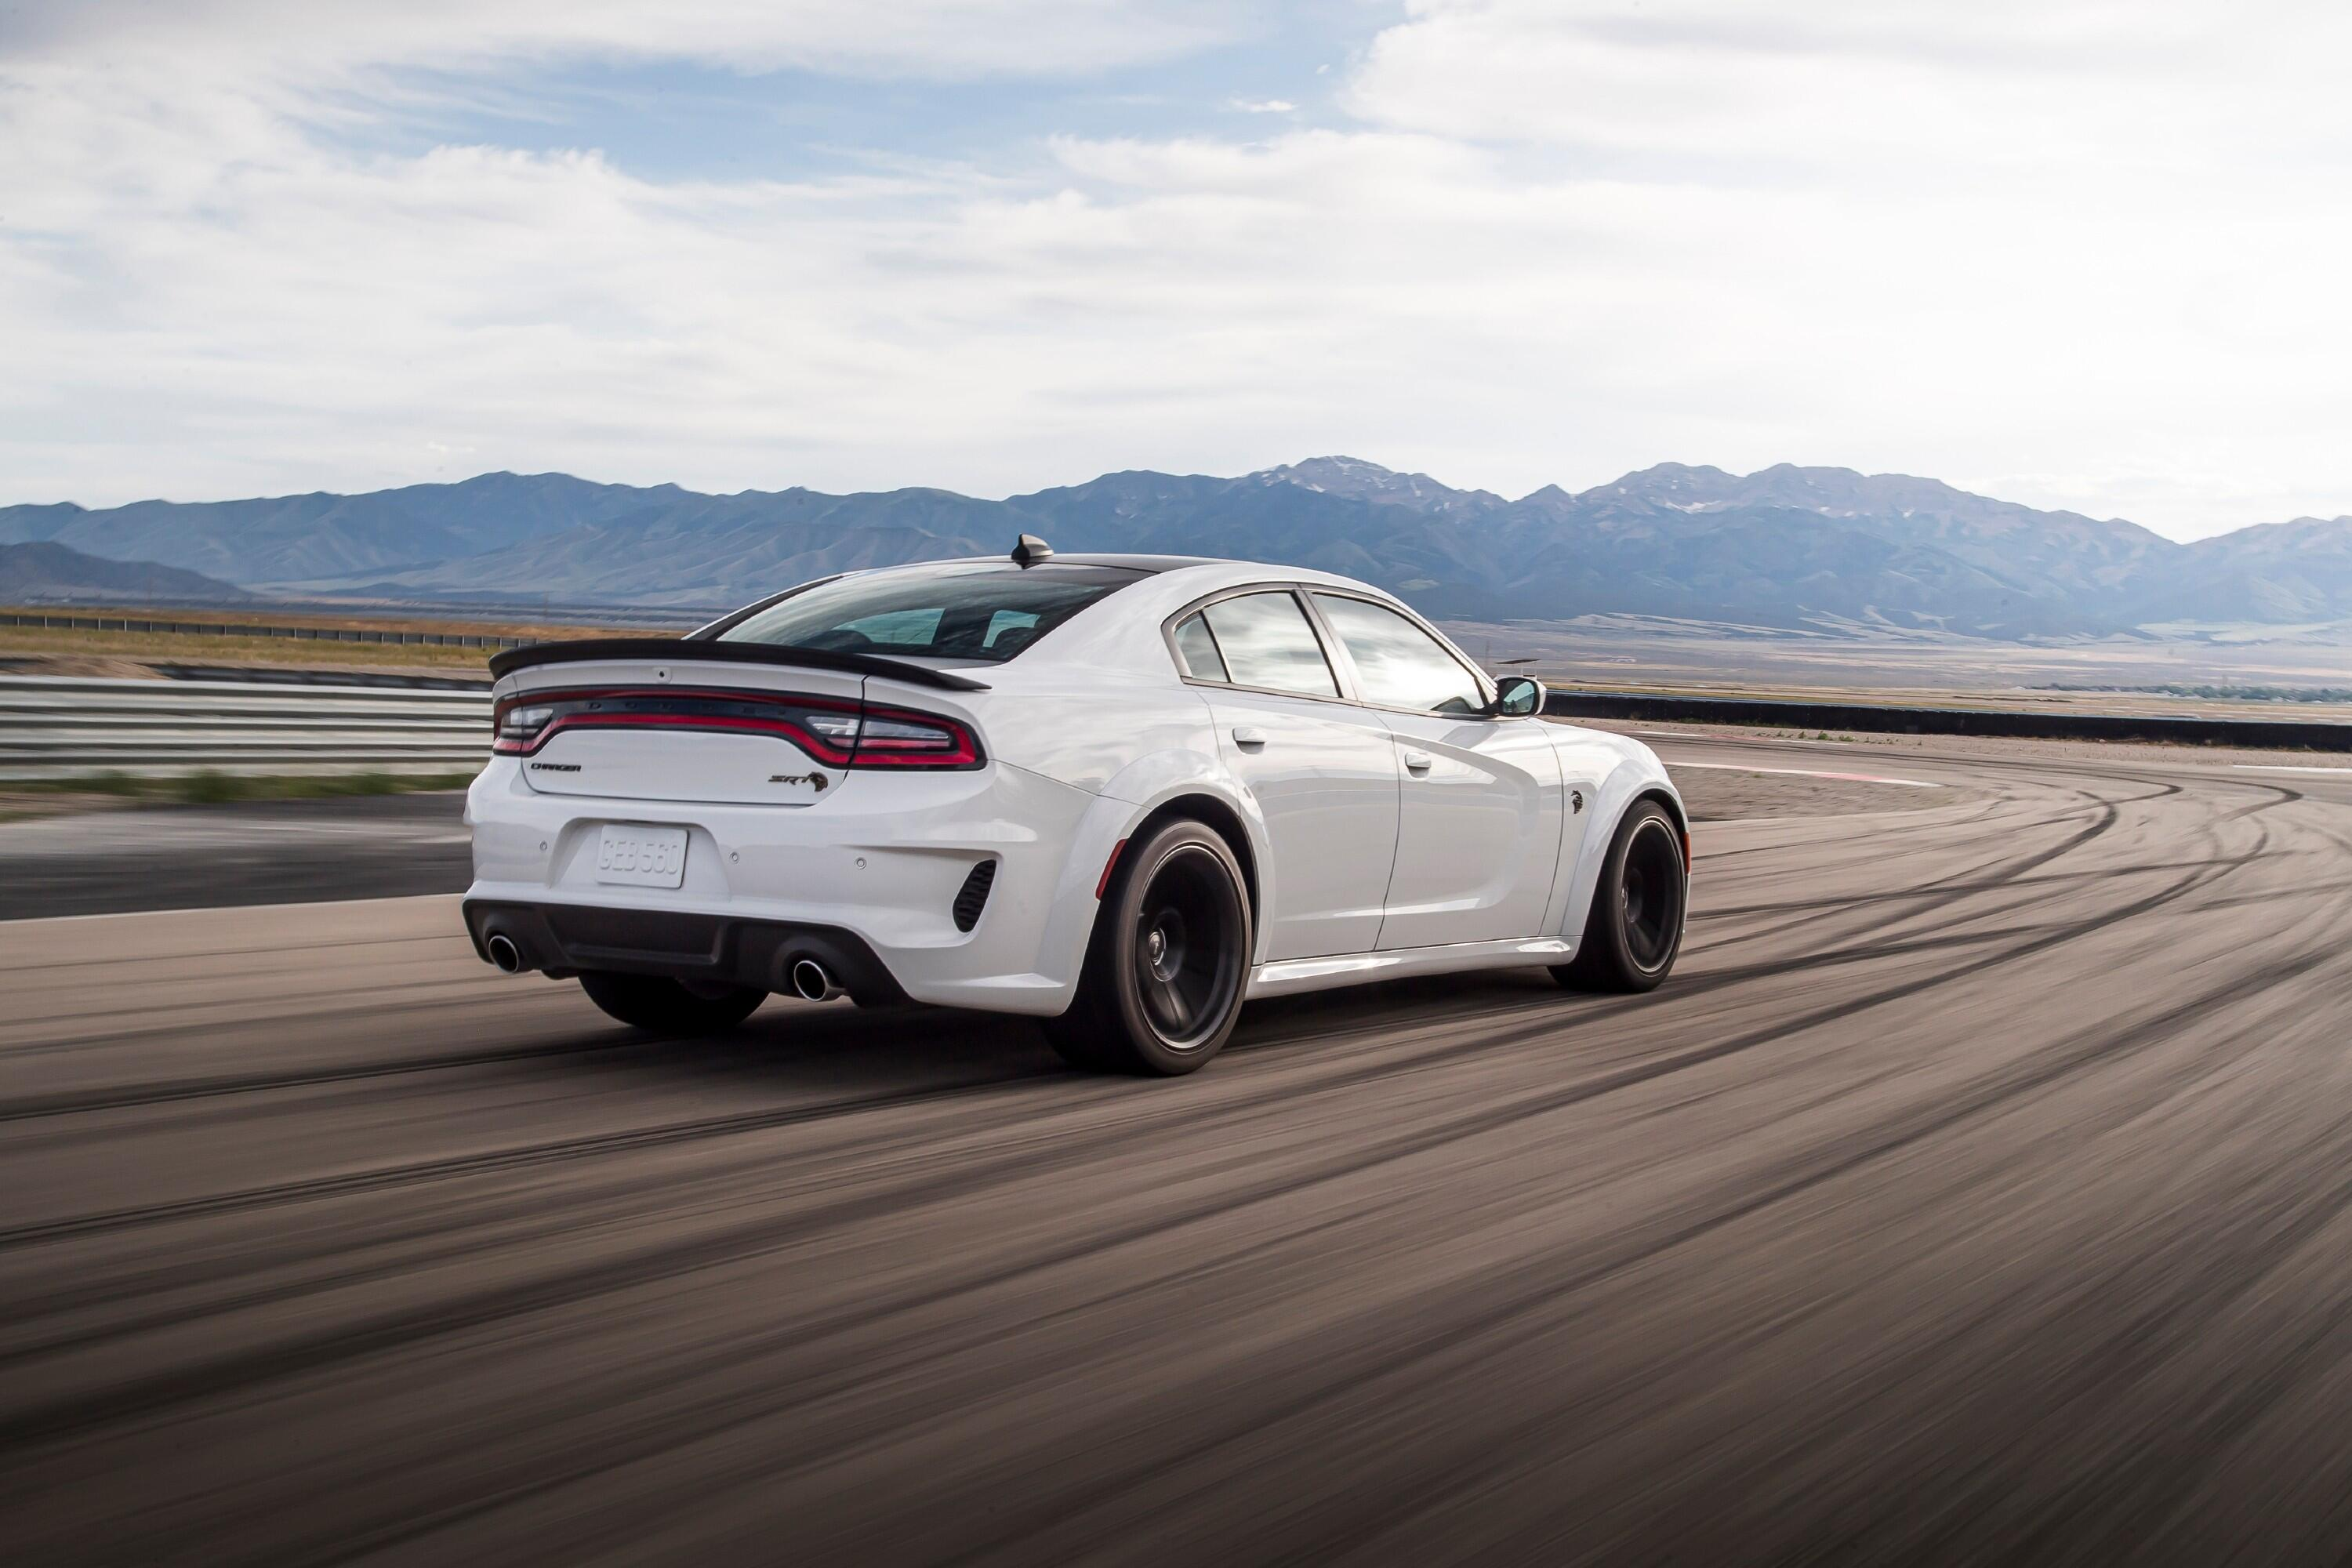 2021-dodge-charger-redeye-009